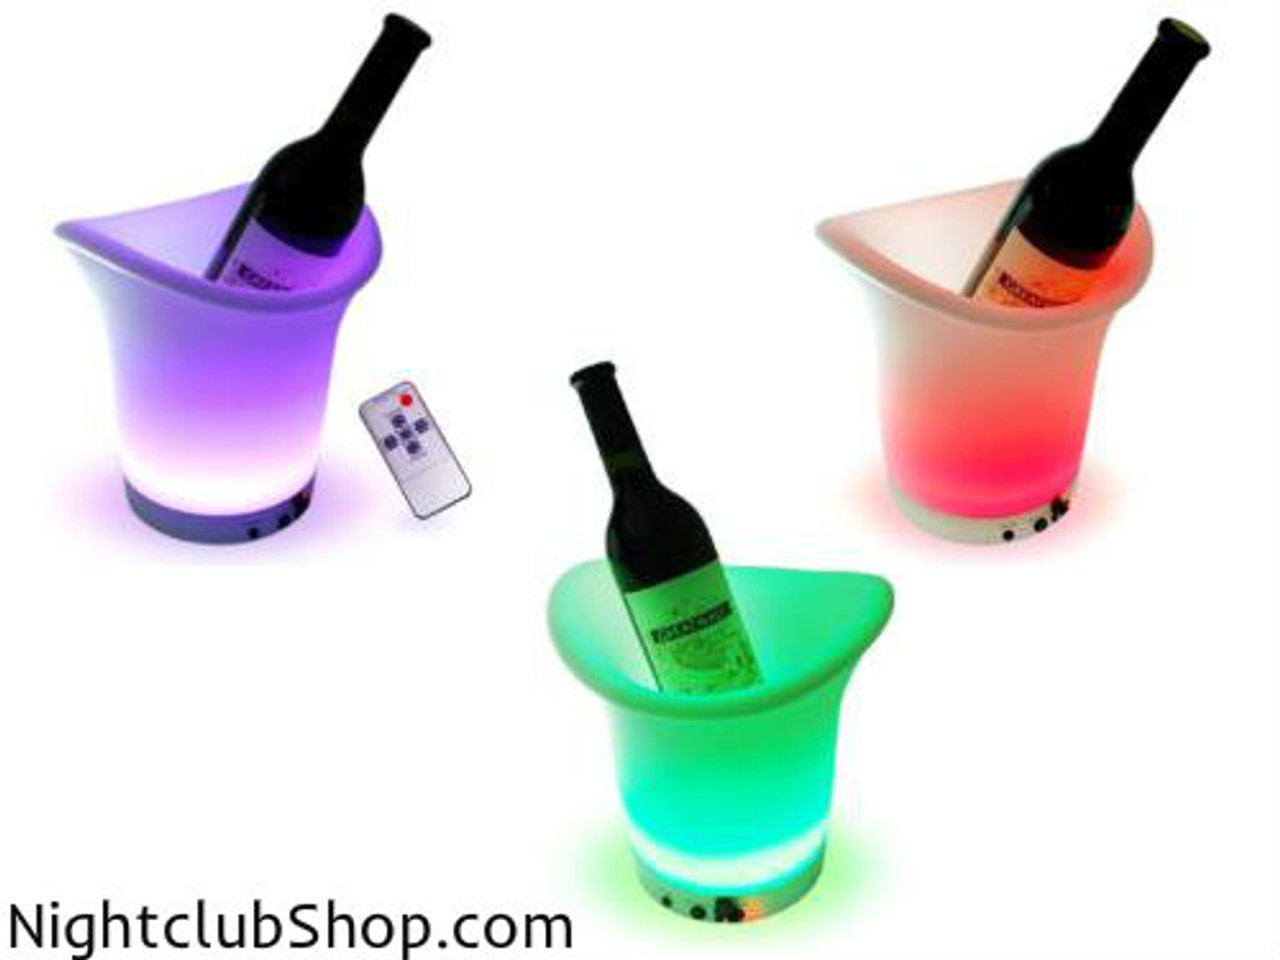 Led Ice Bucket With Remote Offers The Utmost Luxury And